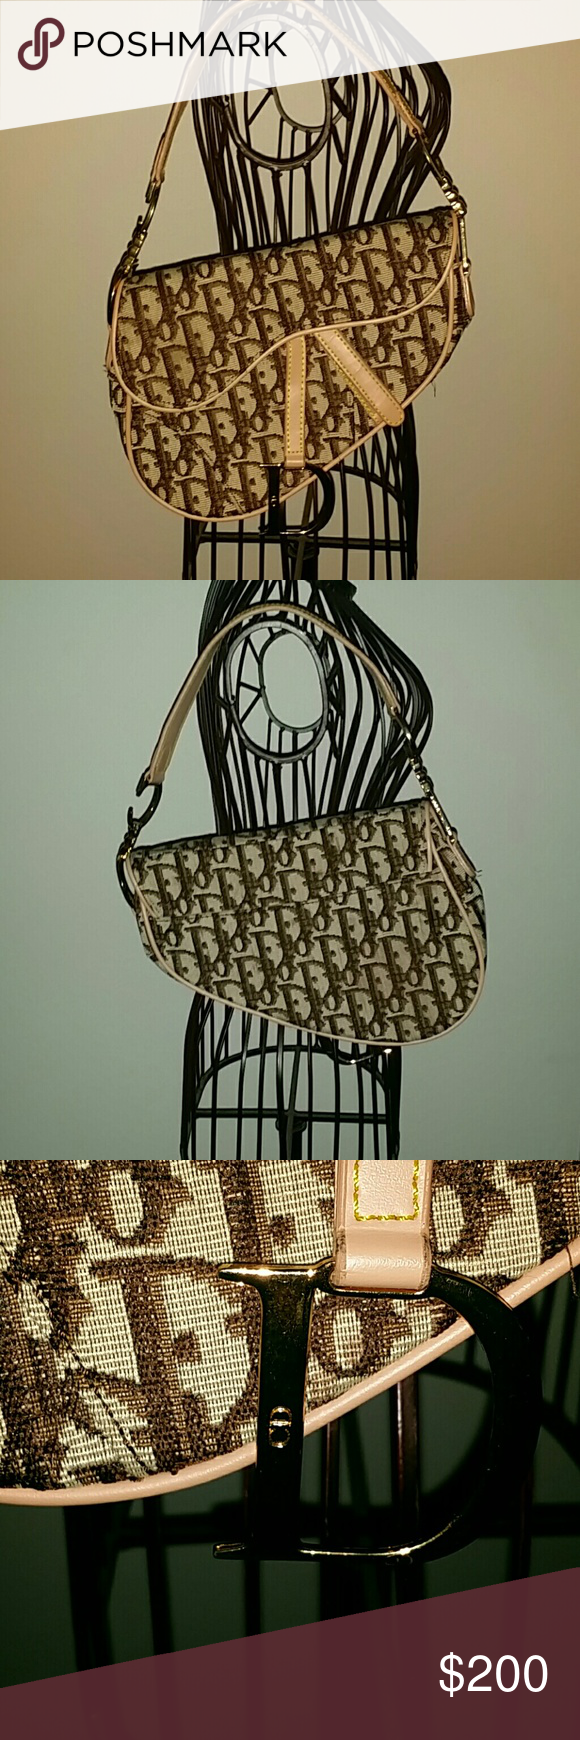 Dior saddle bag Authentic Brown Dior logo saddle bag. Has signature silk paisley lining. Tan leather handle. This bag does has one imperfection on the bottom of the inside lining. Picture shown. It is not noticeable unless searching for it. Comes with dust bag. Dior Bags Shoulder Bags